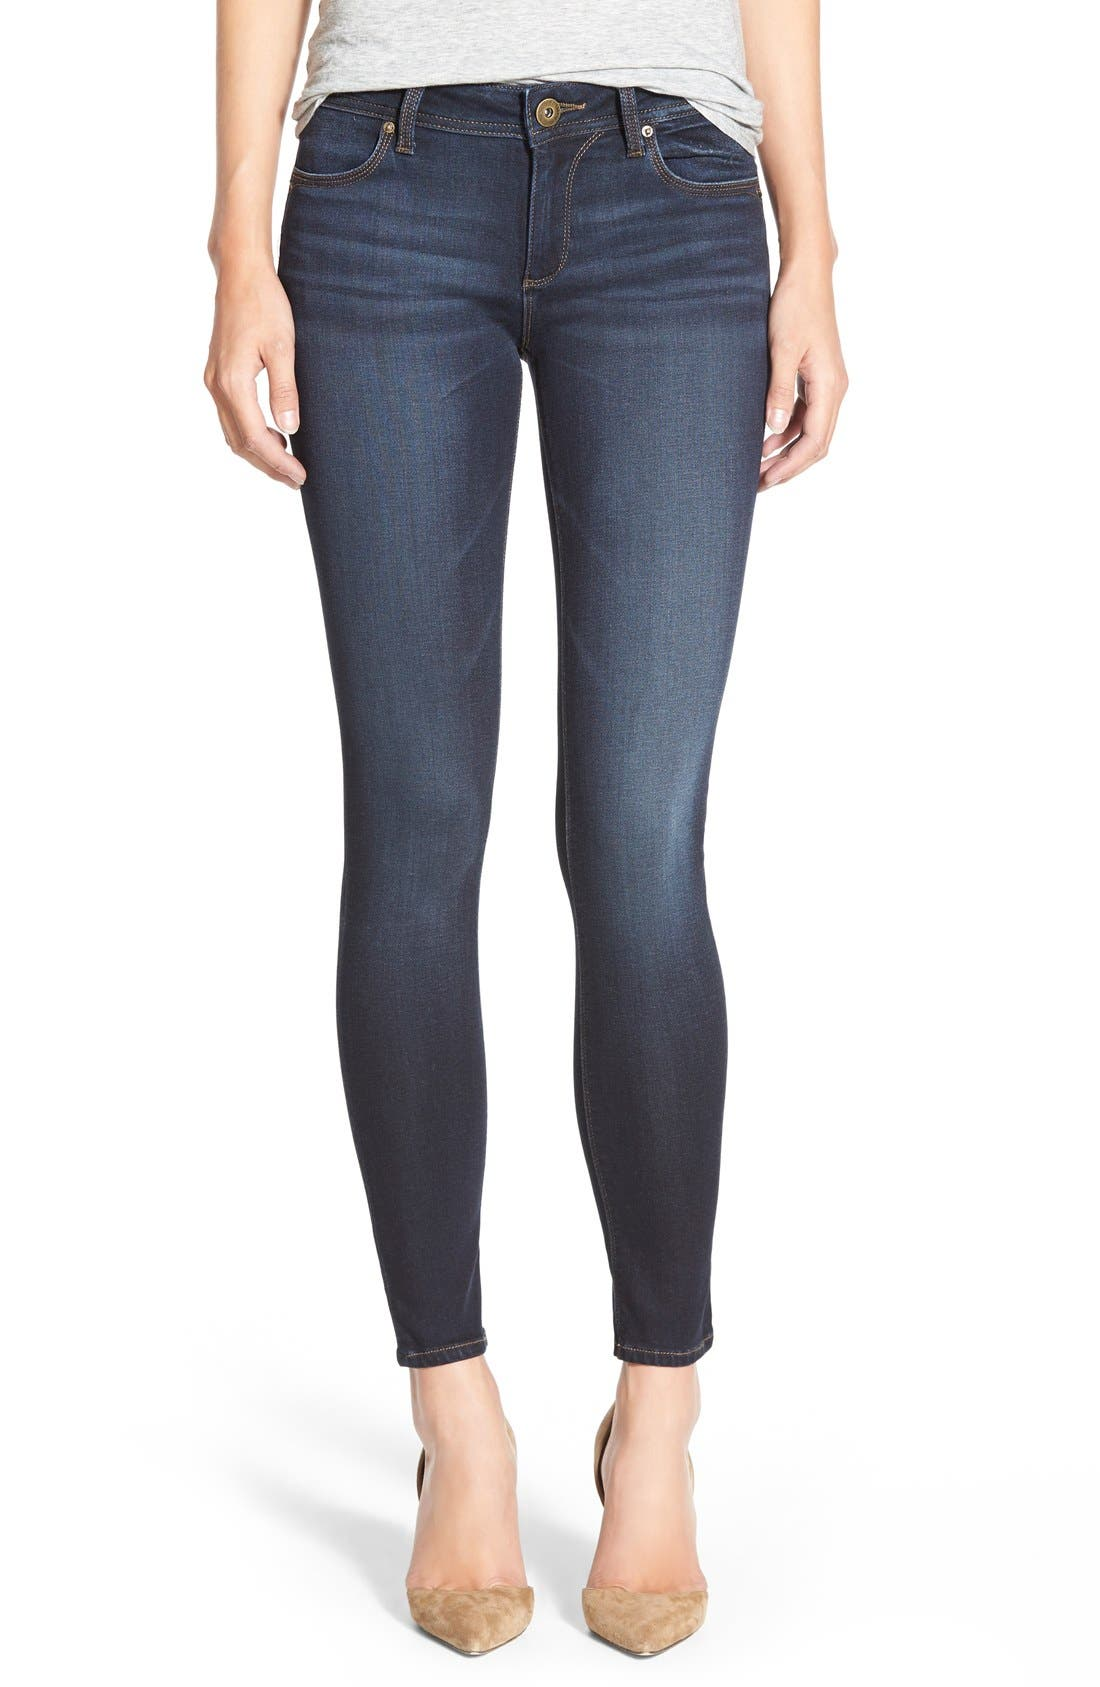 'Emma' Power Legging Jeans,                             Main thumbnail 1, color,                             405